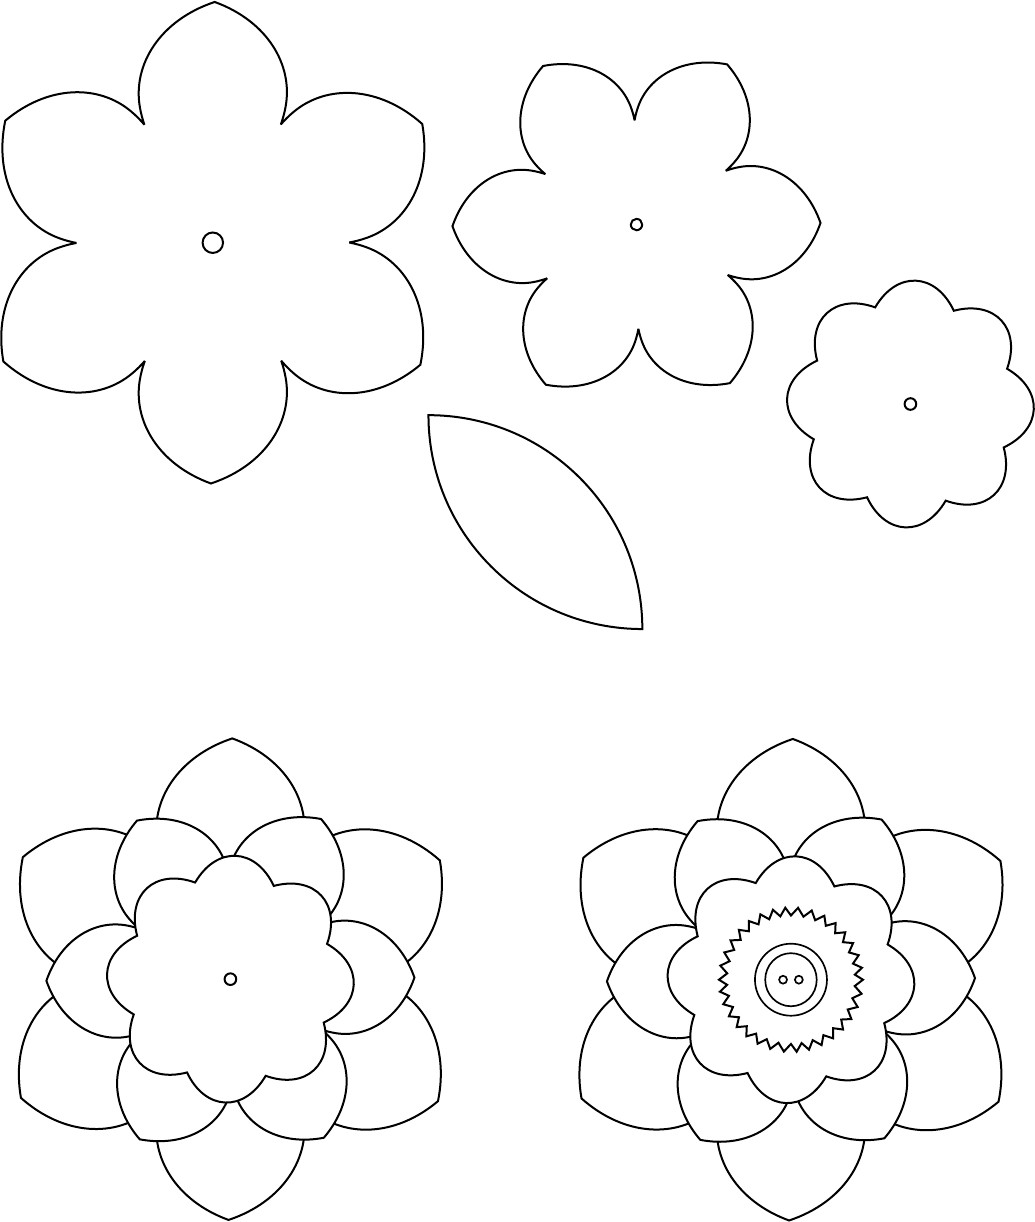 Paper Flower Template Printable Flower Template 1 трафареты цветы Pinterest